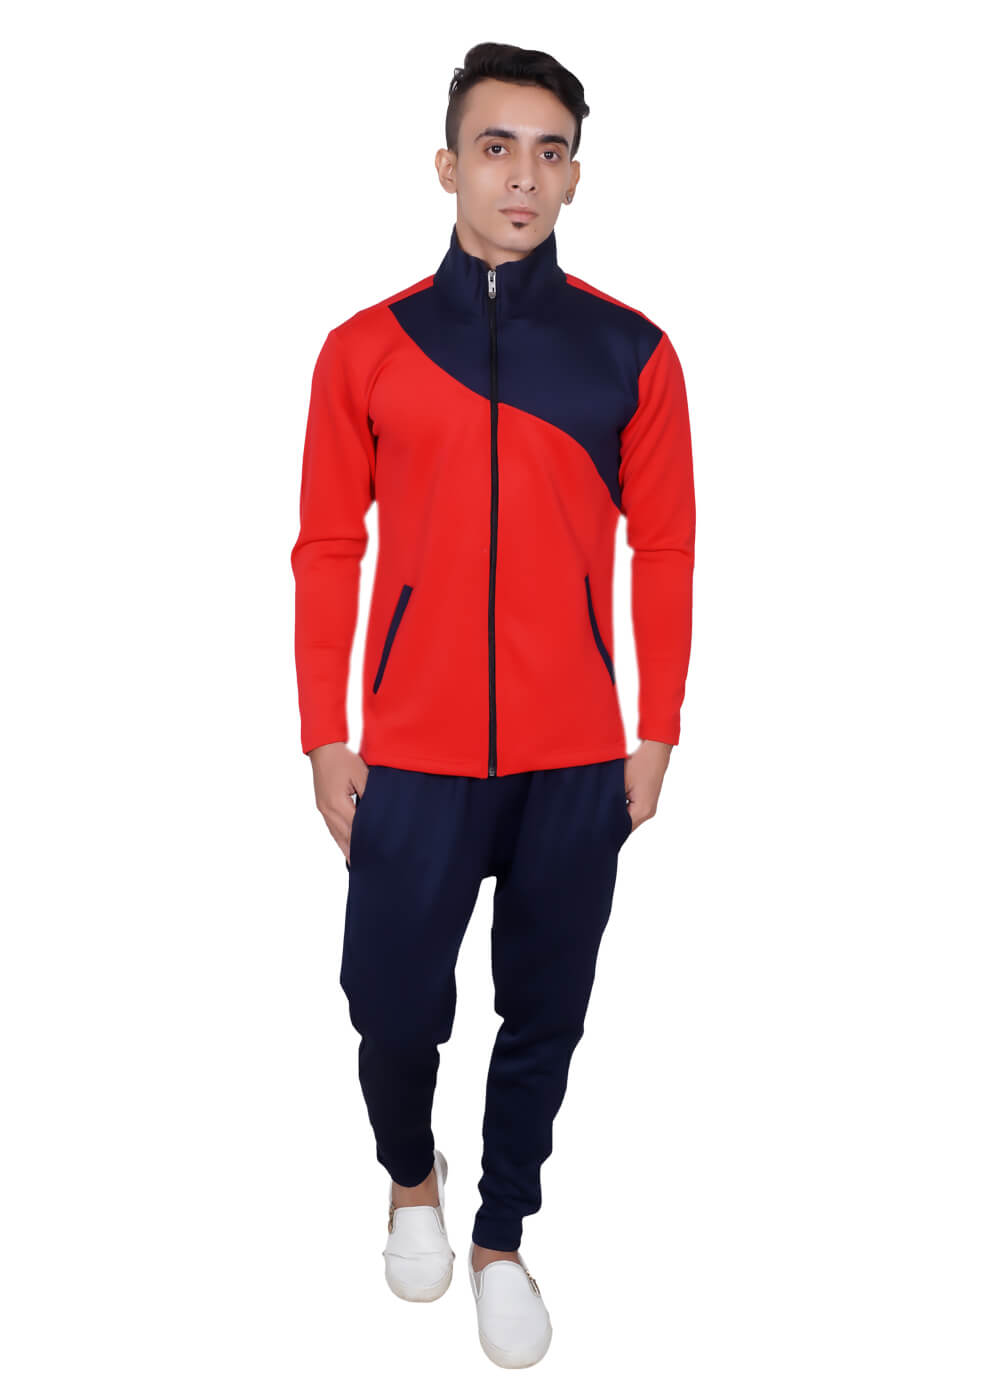 Cheap Tracksuits Manufacturers in Saharanpur